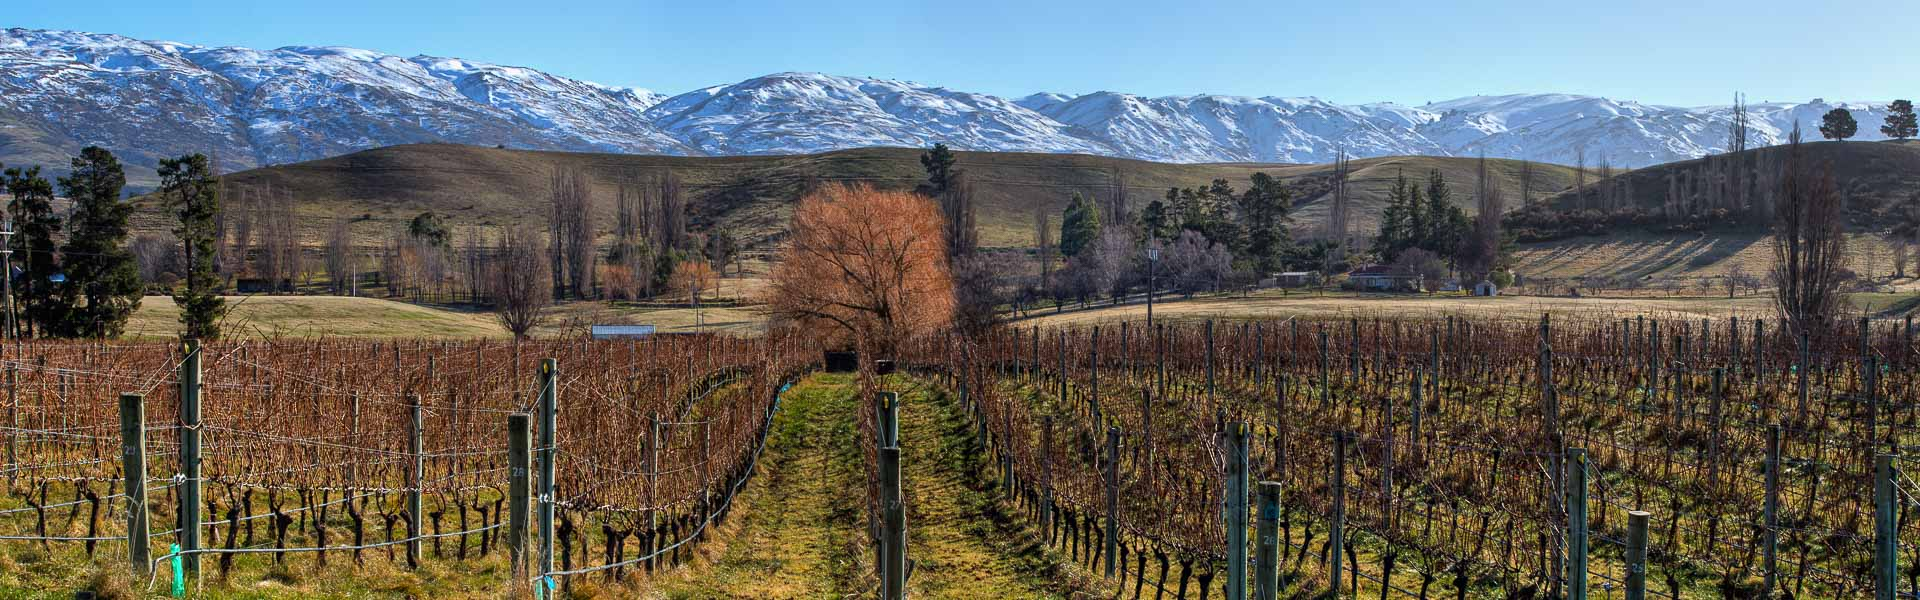 Central Otago Vineyards